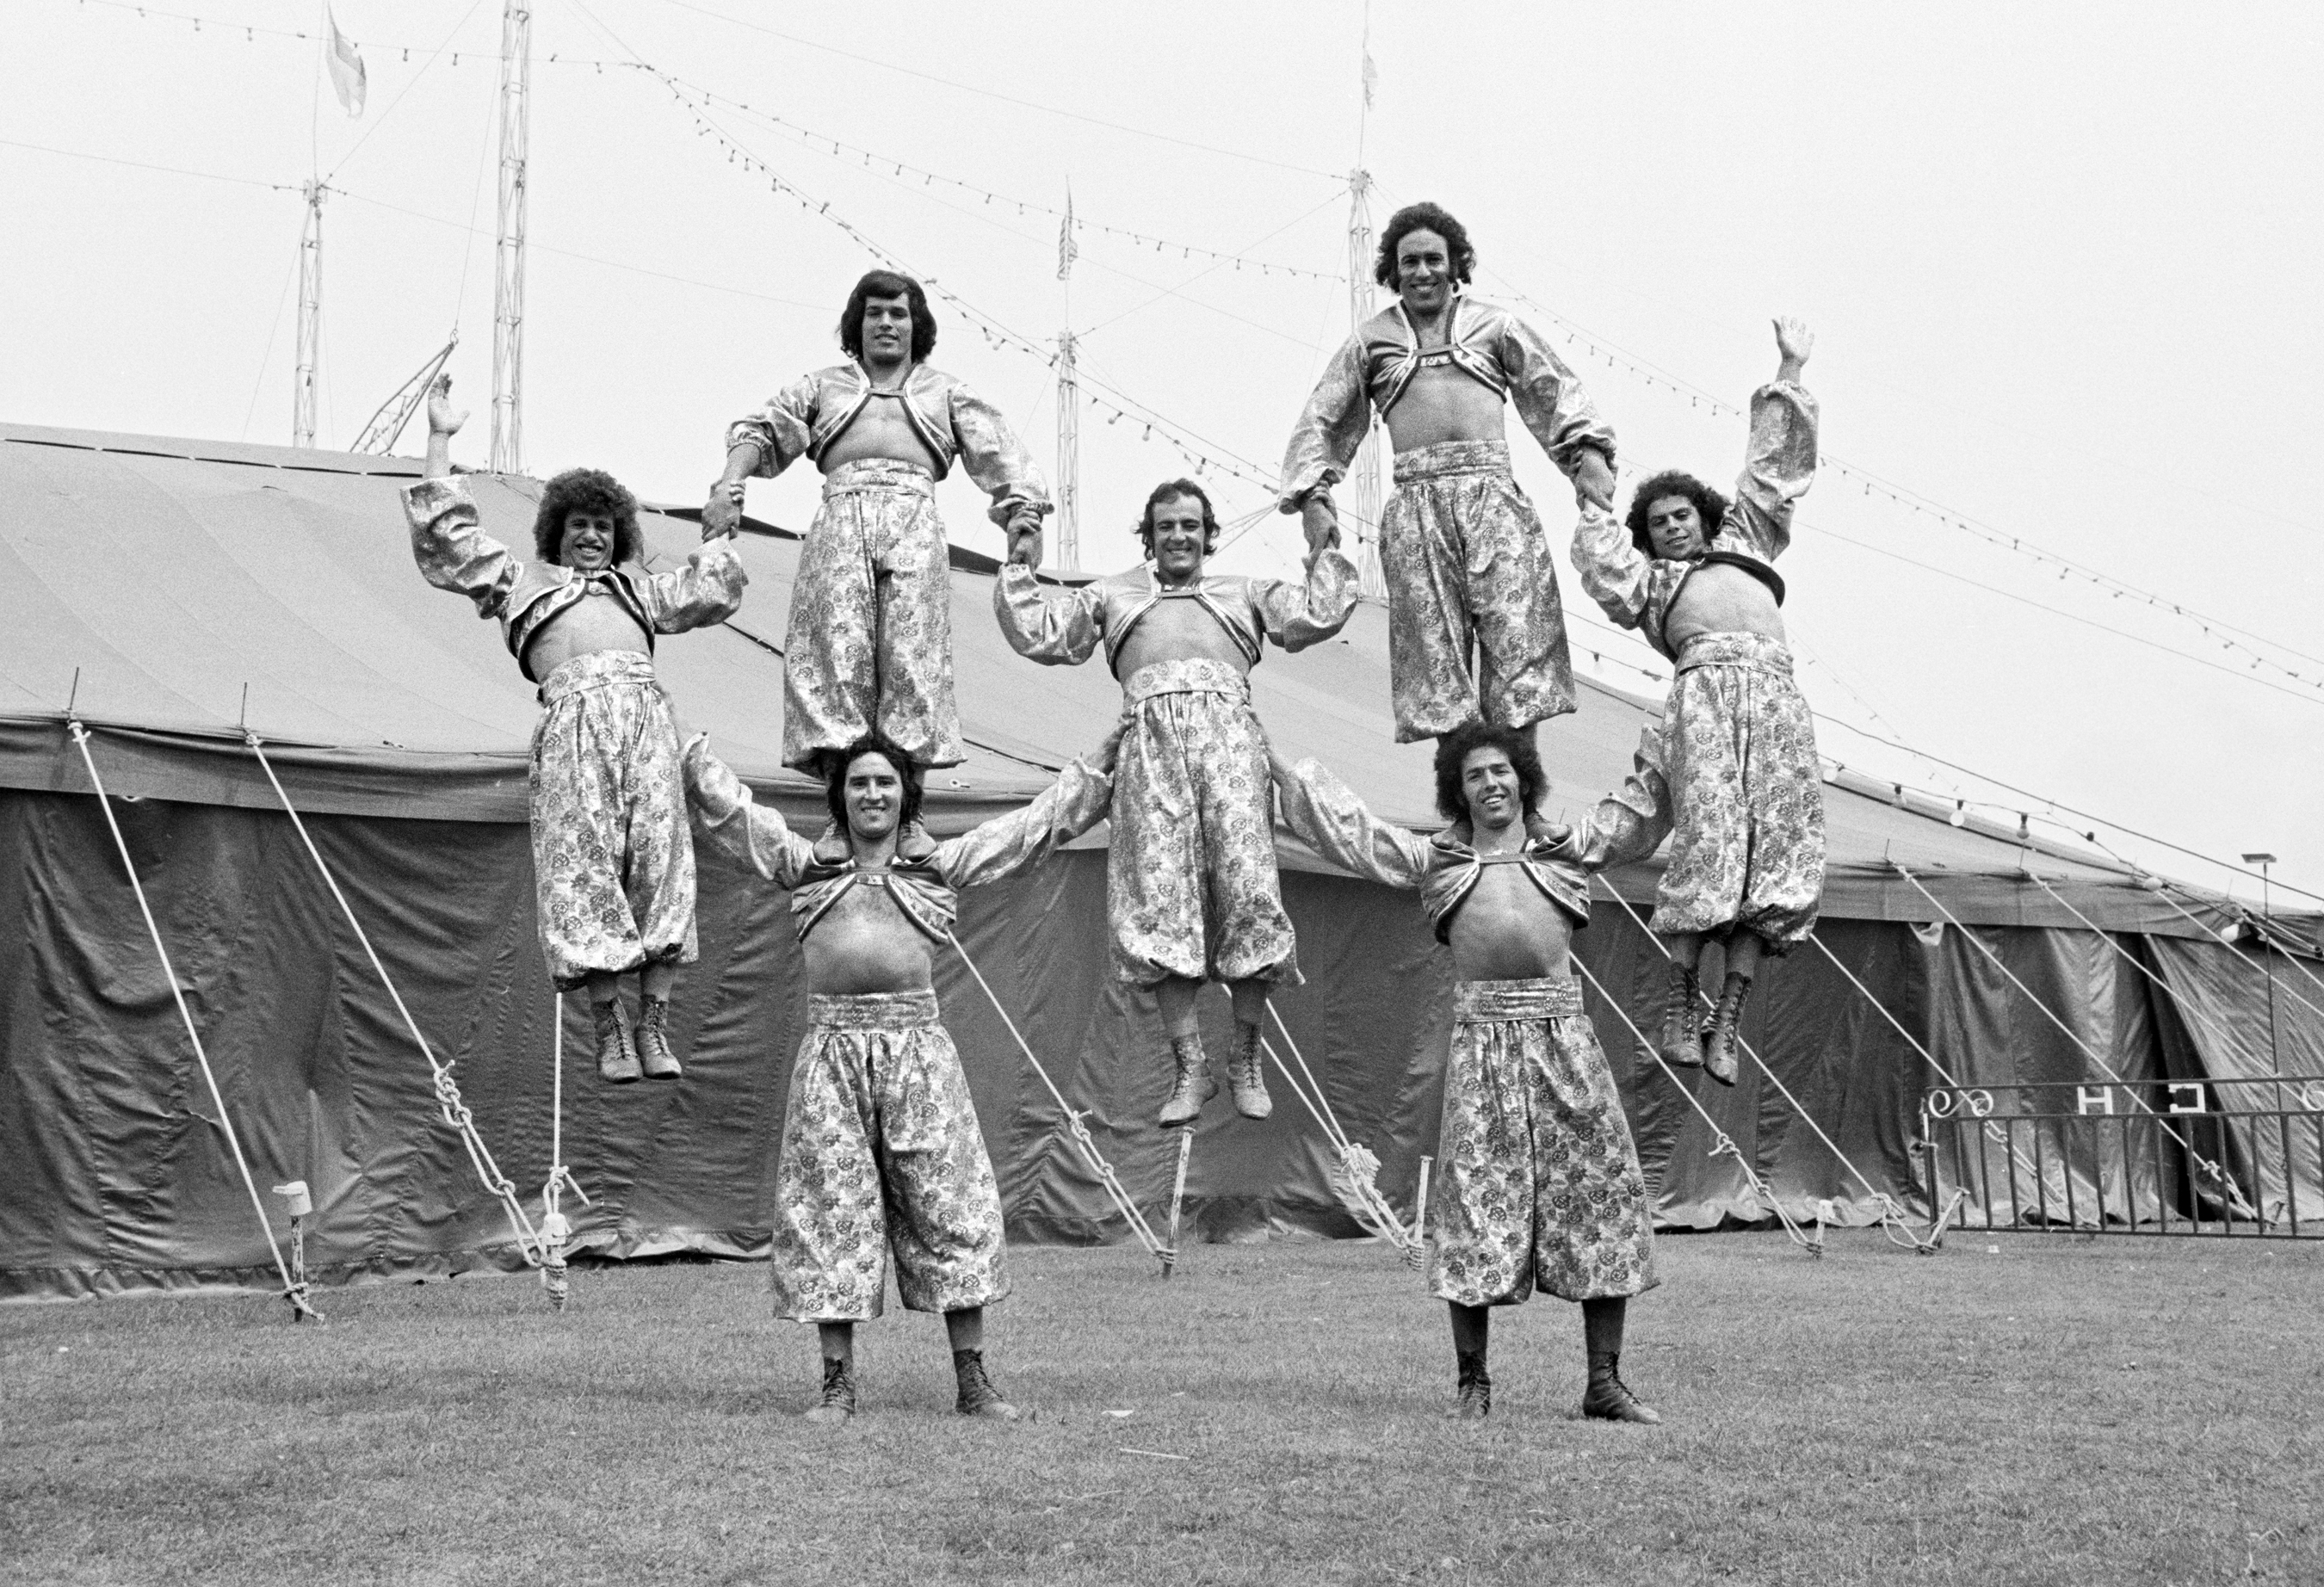 Tanger Troupe, Circus Hoffman, Plymouth, August 1974, from the Free Photographic Omnibus